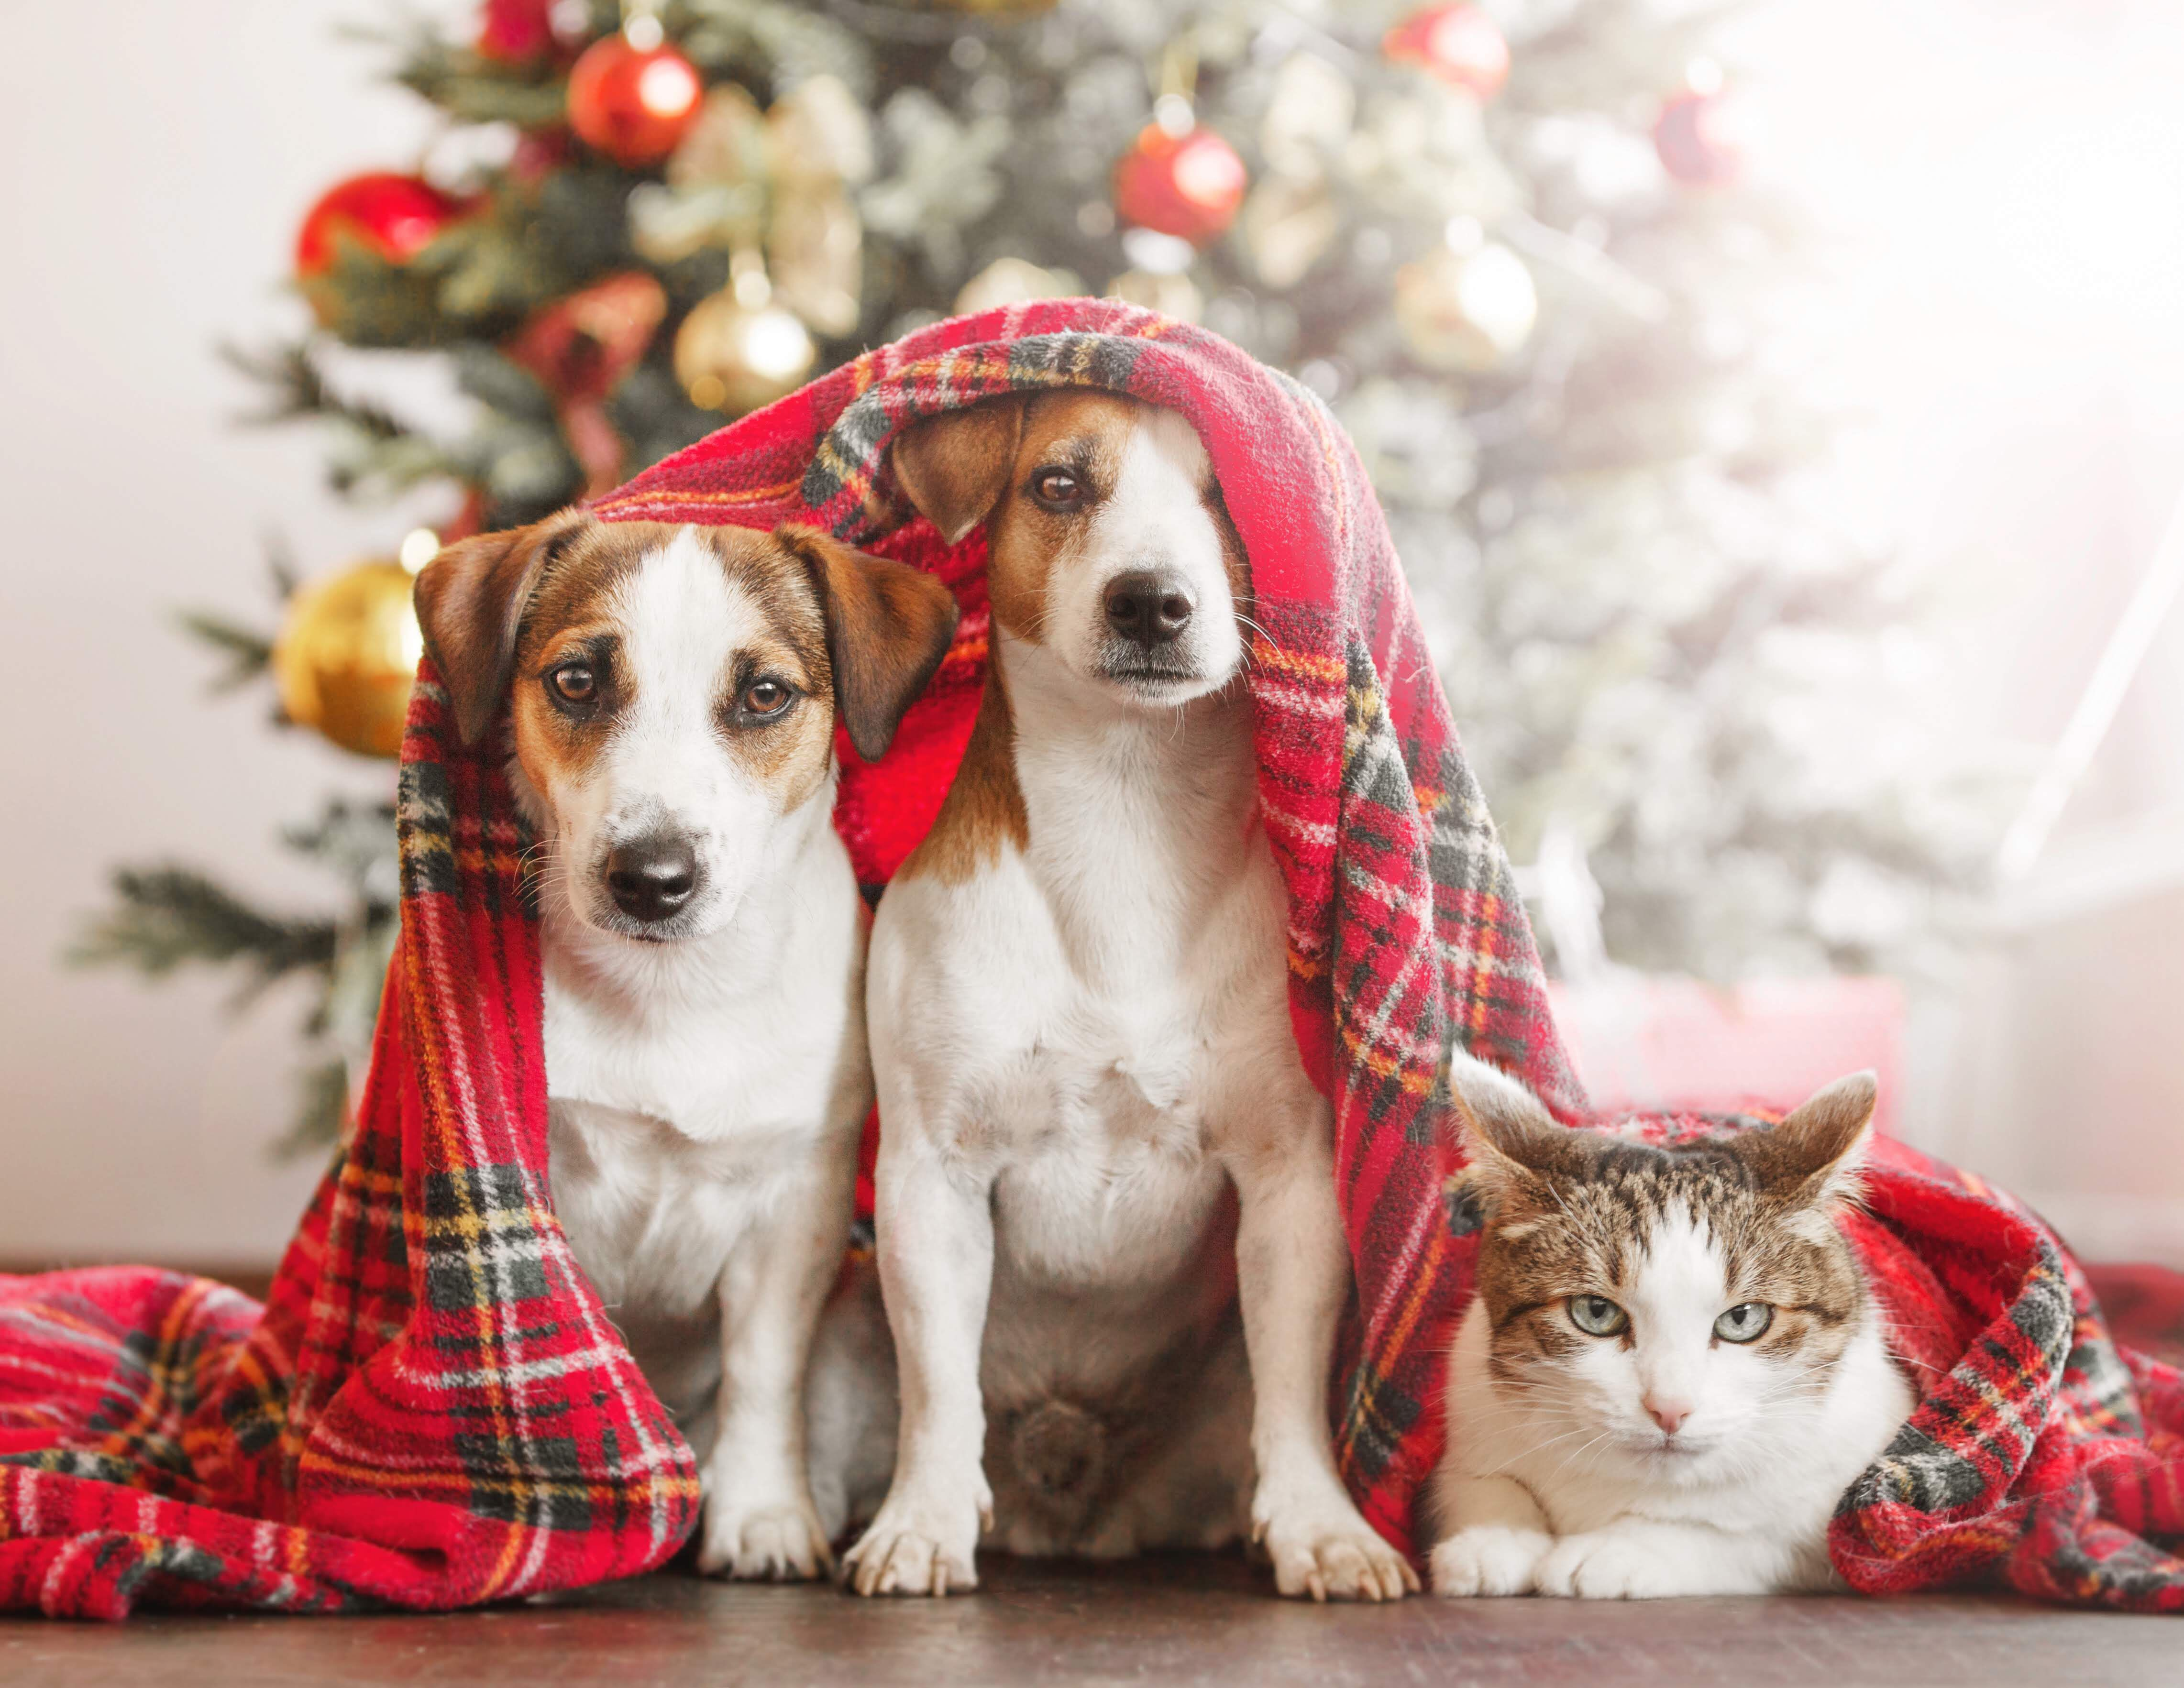 Cute Christmas pics with two Jack Russels and a grumpy